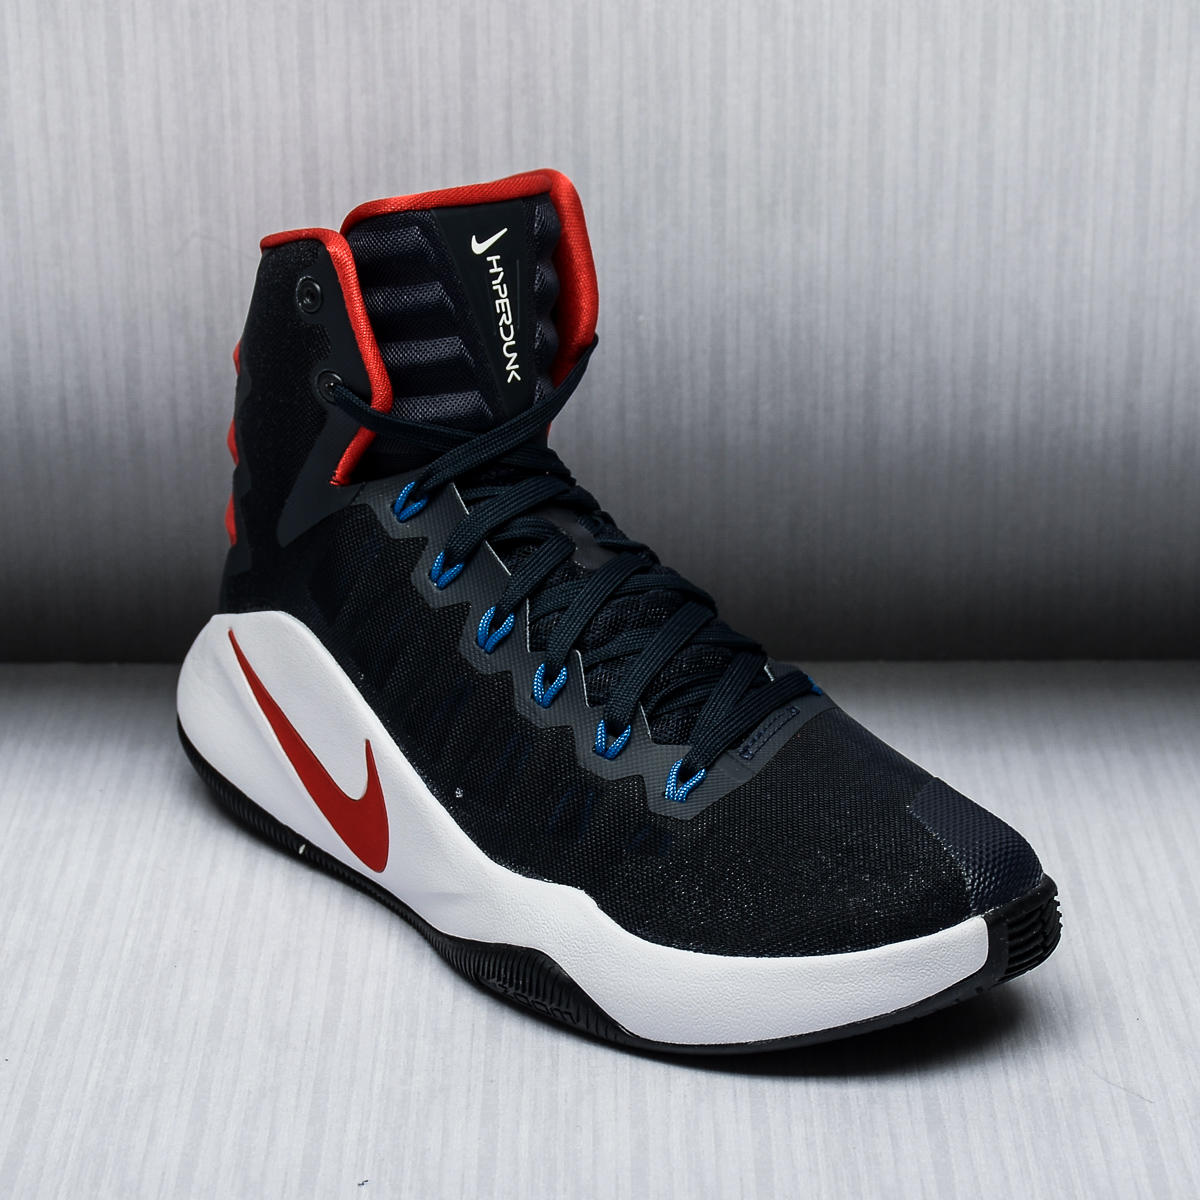 Nike Hyperdunk 2016 USA Basketball Shoes - BASKETBALL ...